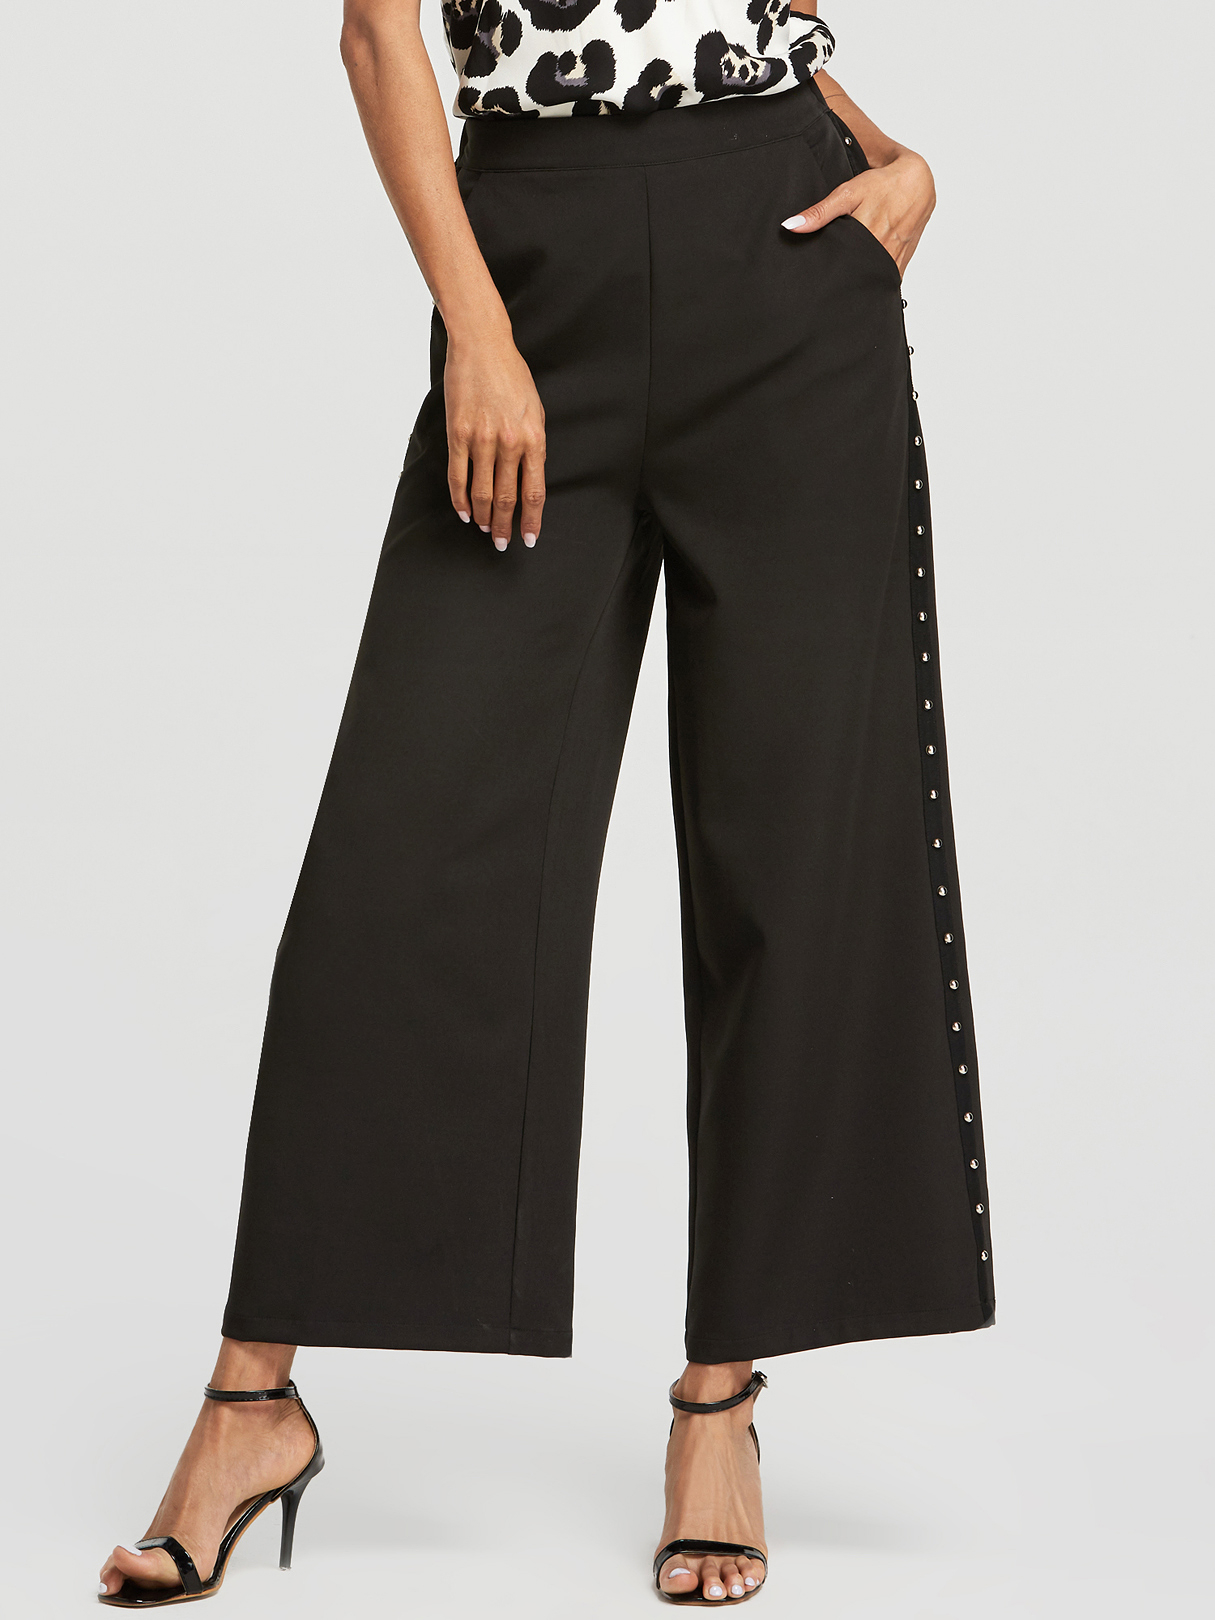 Black Beaded Details High-Waisted Wide Leg Pants